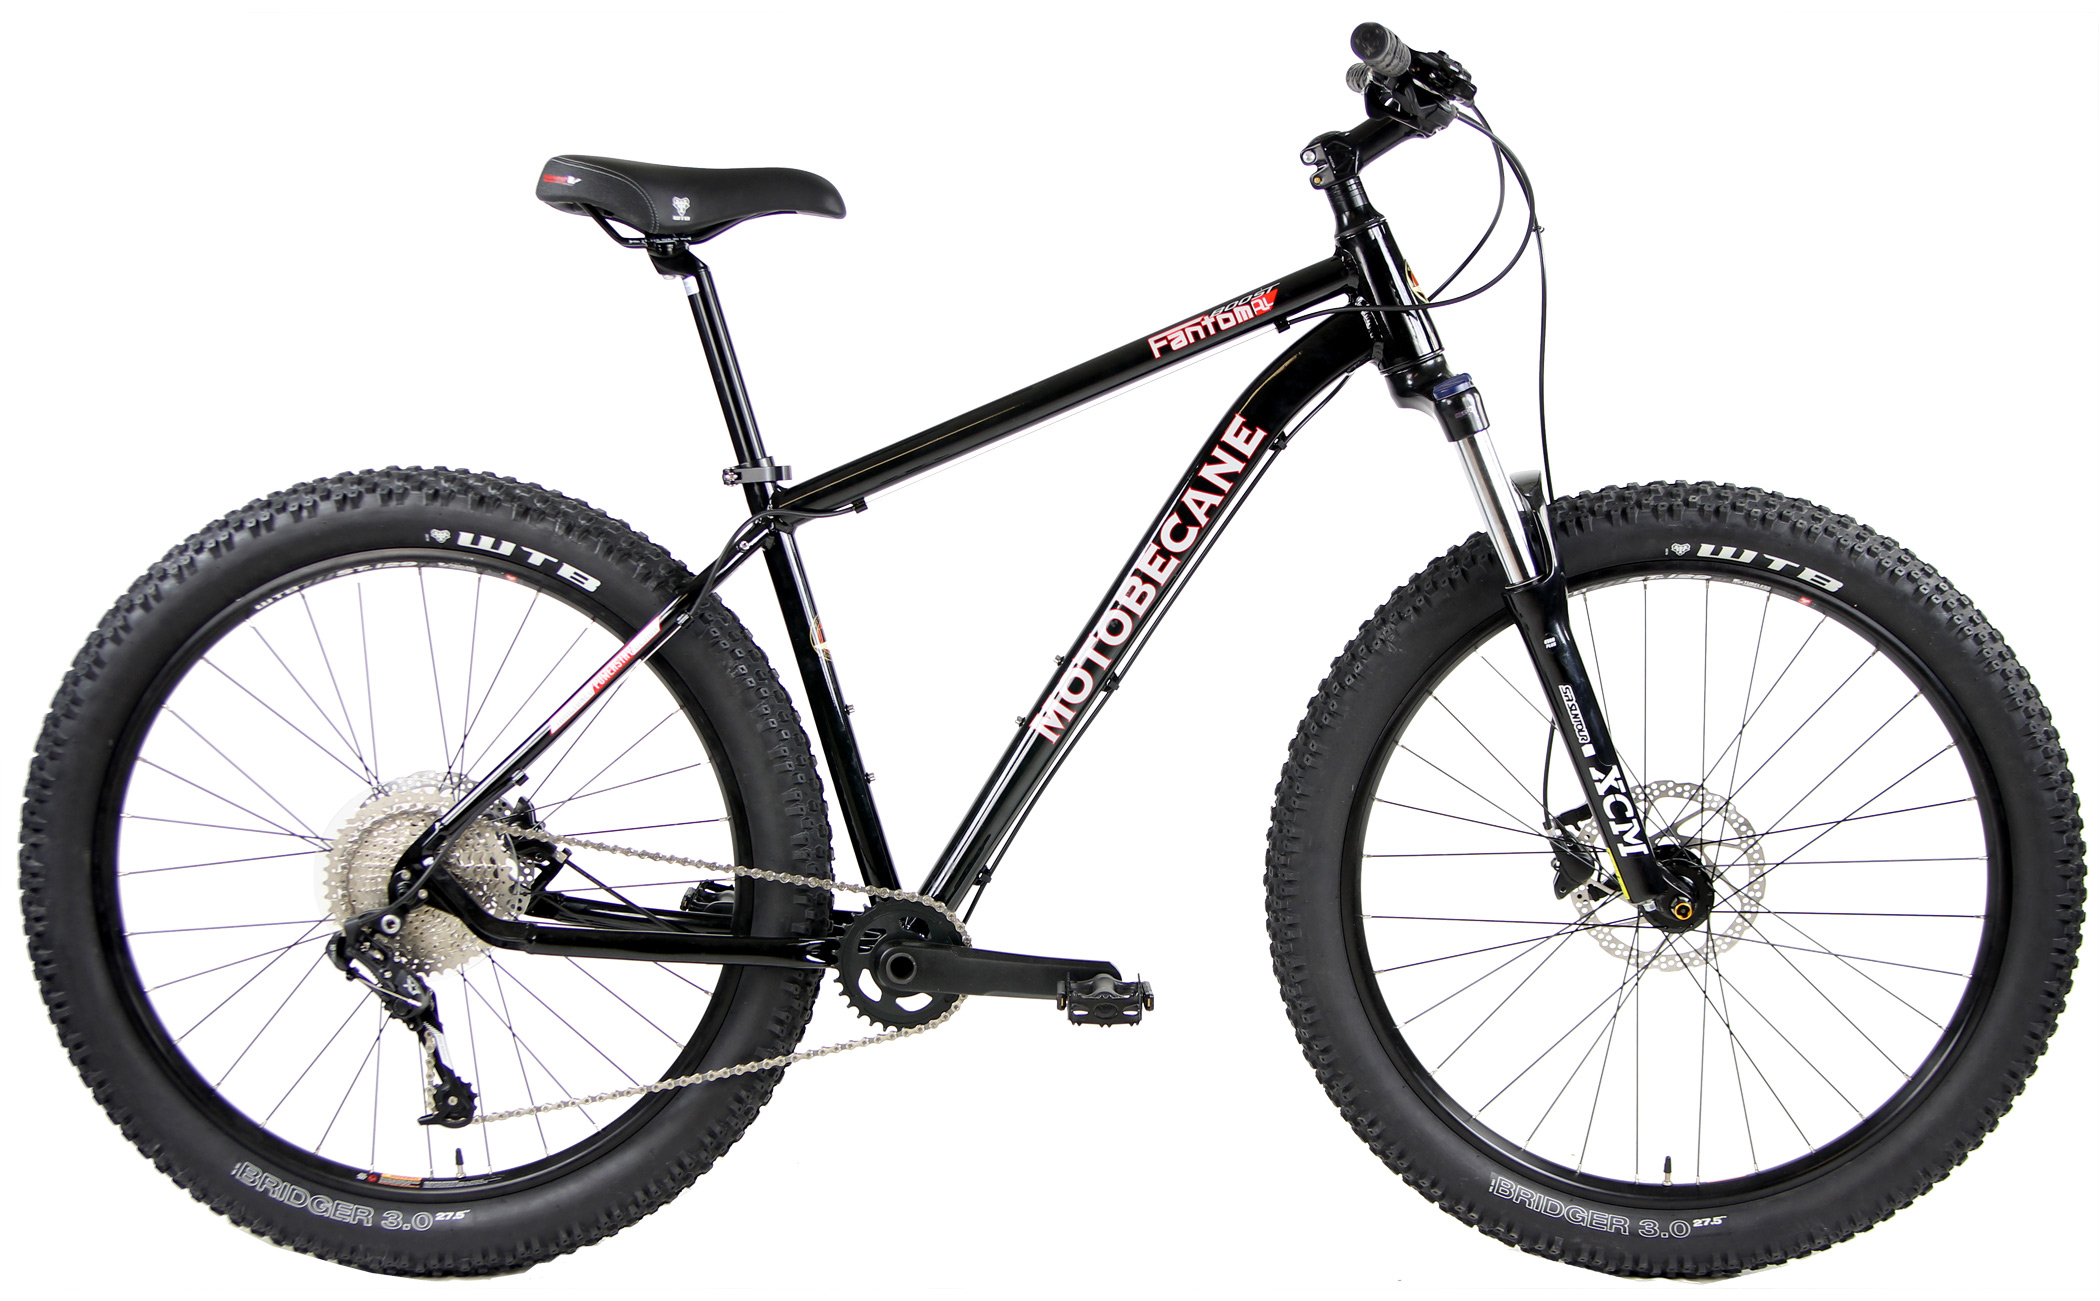 Bikes Motobecane Fantom Boost Trail Front Suspension SRAM X7 1x10 Speed, Shimano Hydraulic Disc Brakes Image